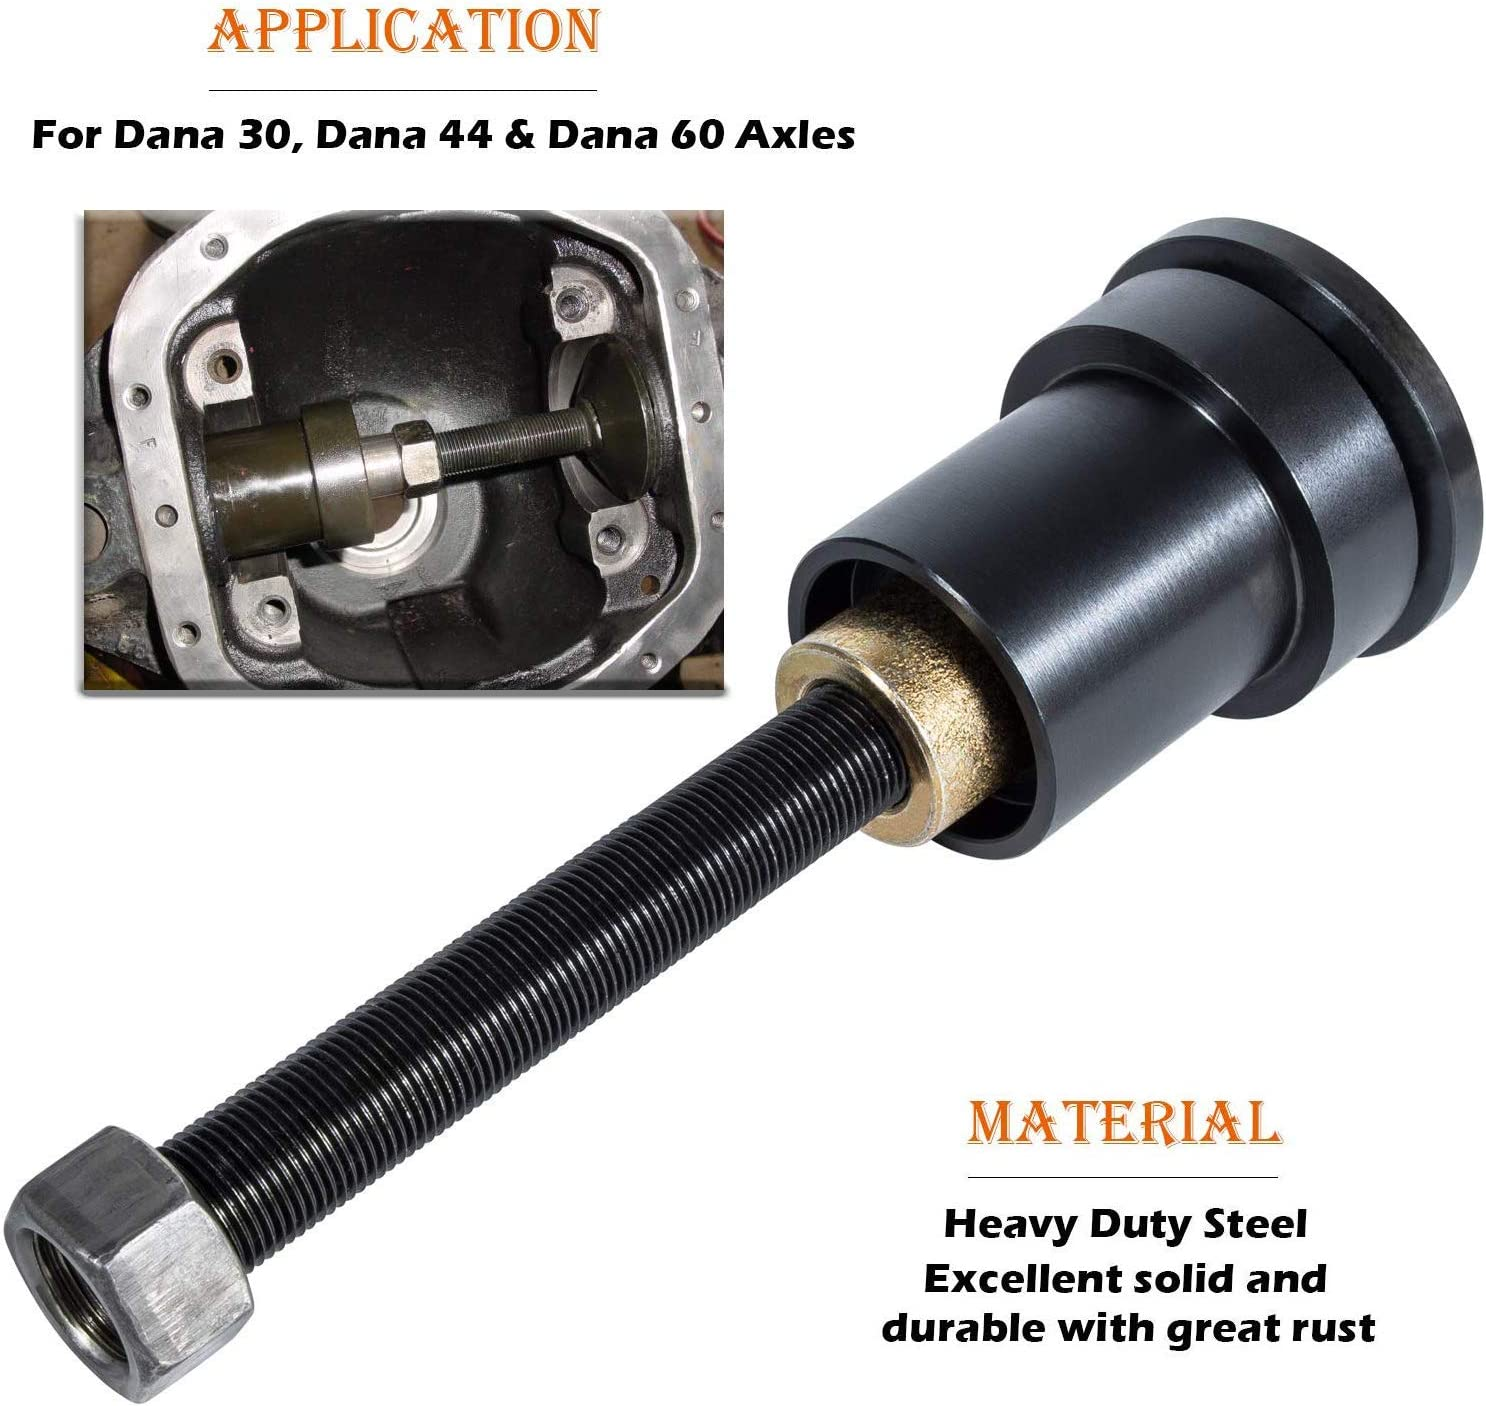 Inner Axle Side Seal Installation Tool and MG21103 Front Axle Tube Seal for Dana 30 Dana 44 /& Dana 60 Axles Front Differentials